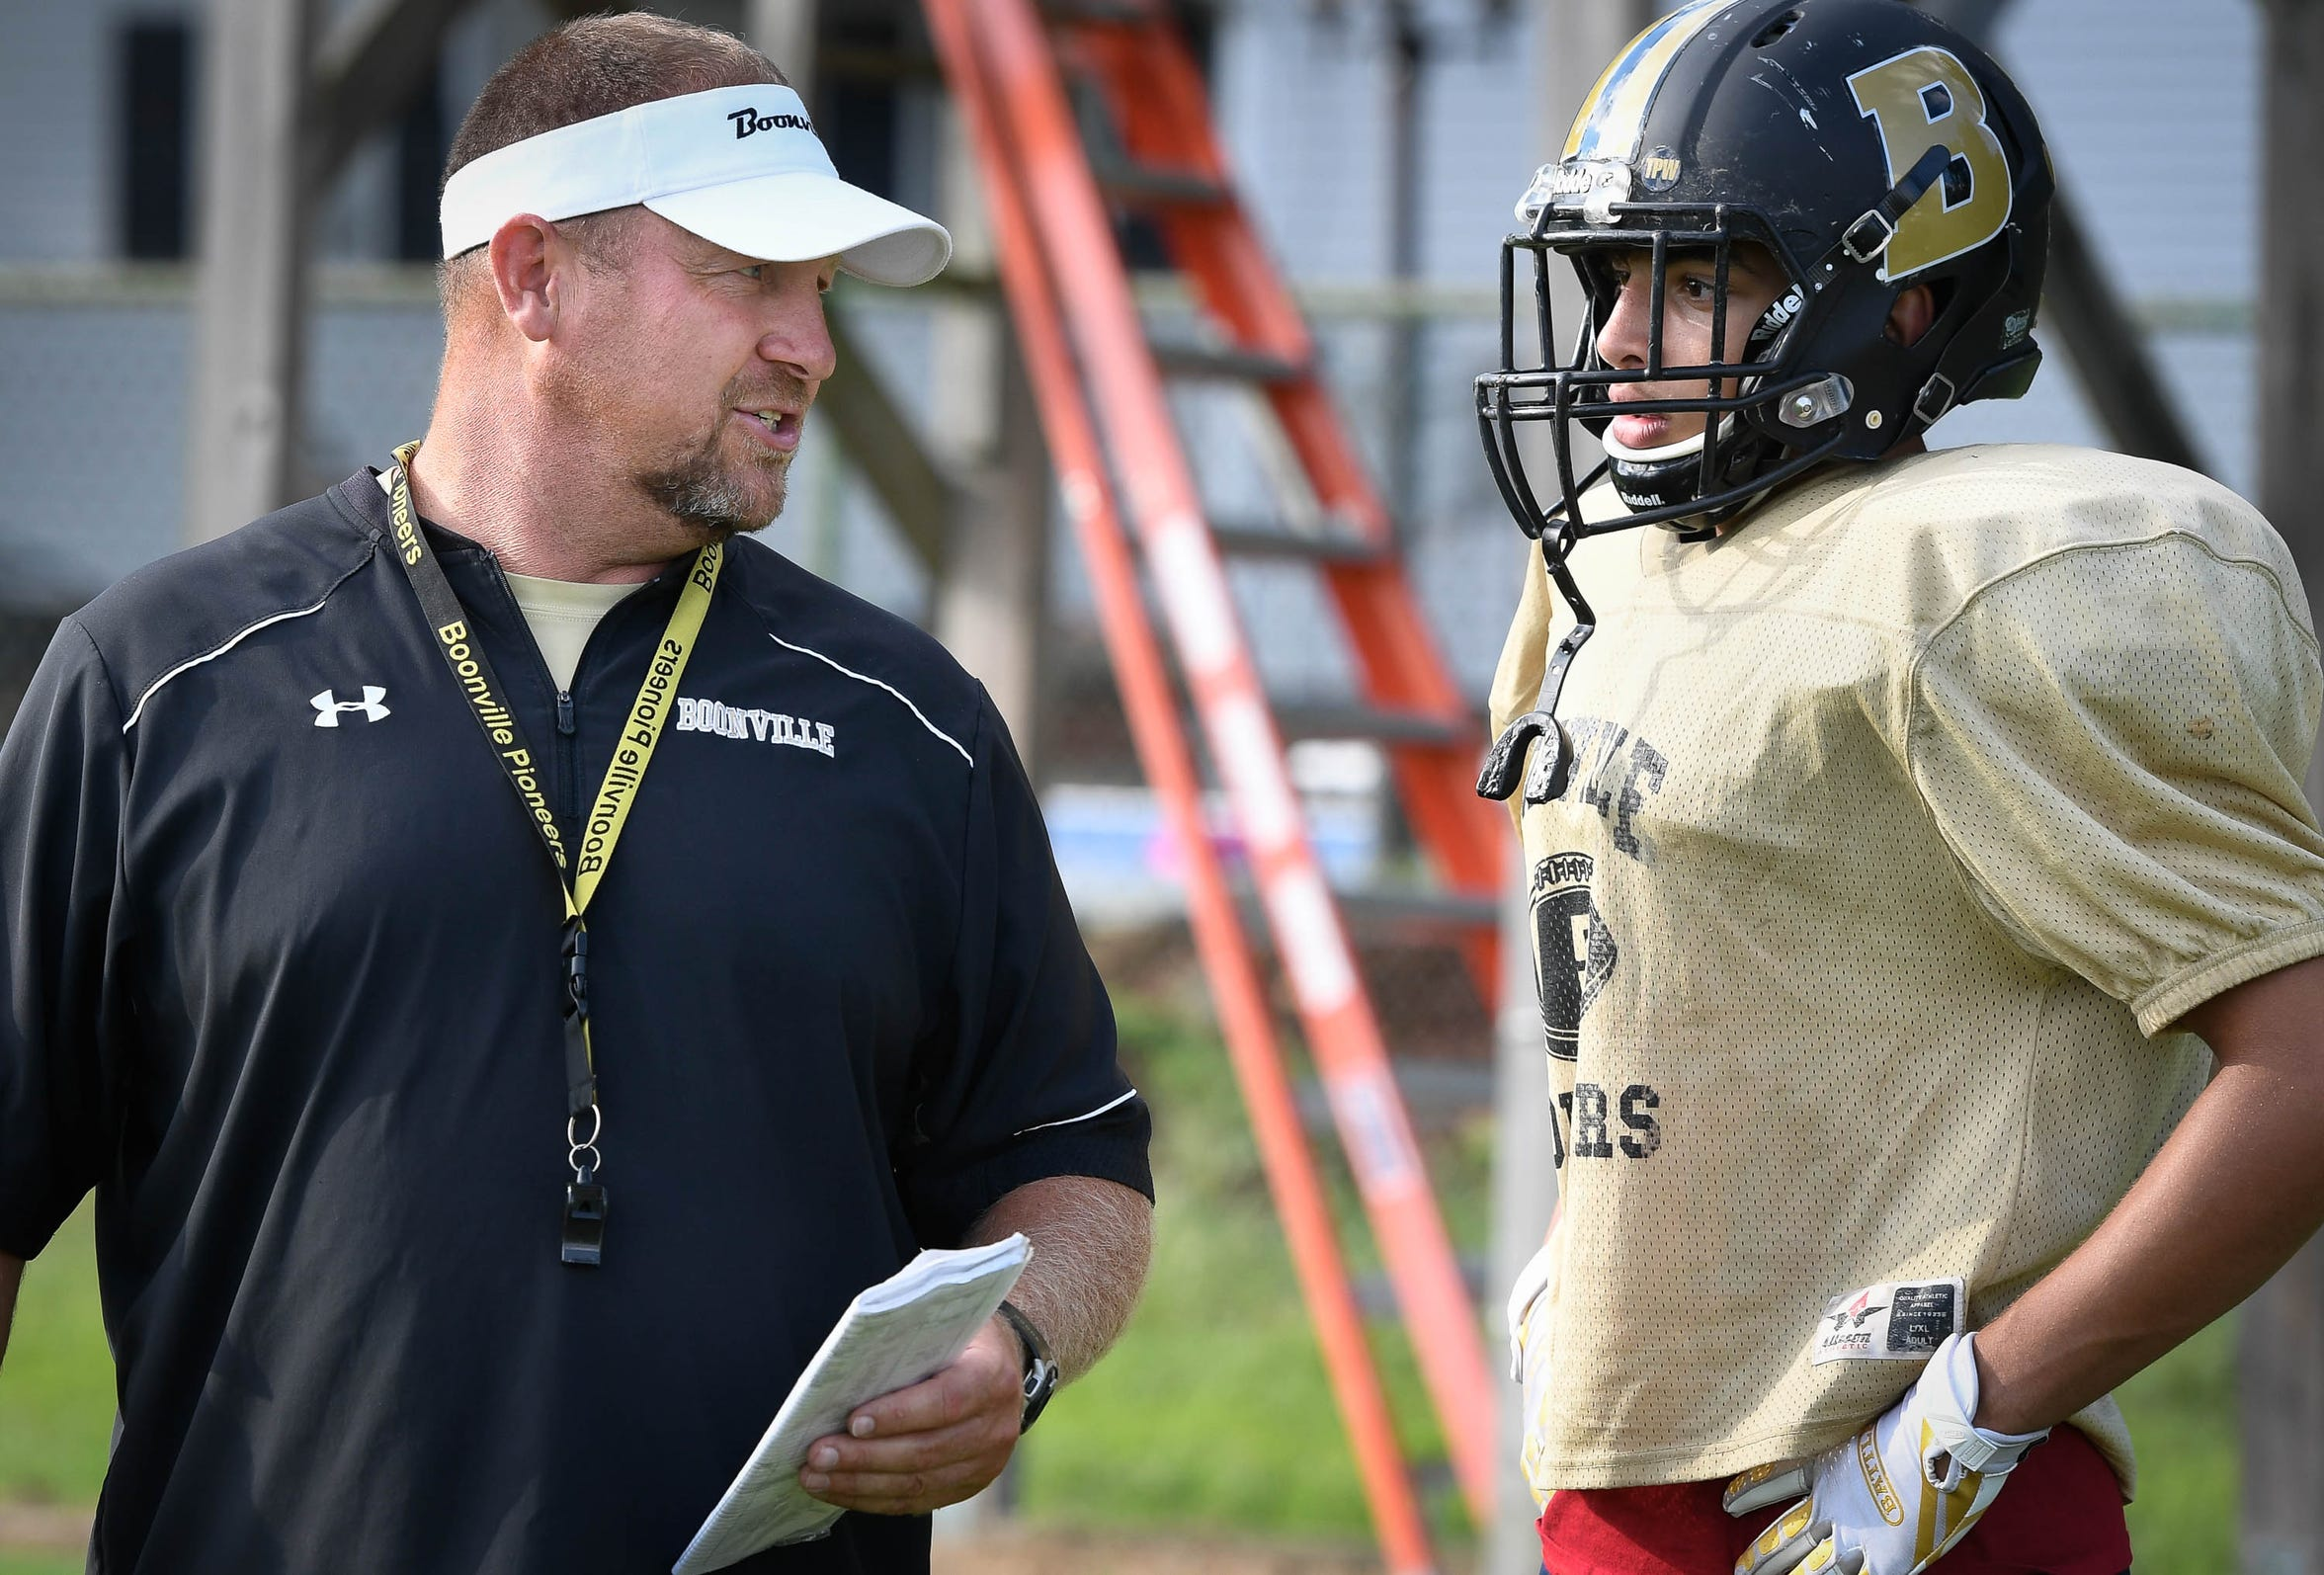 Boonville High top assistant coach Ben Wolfe talks with Devin Mockobee (5) during afternoon practice in Boonville Monday, September 10, 2018.